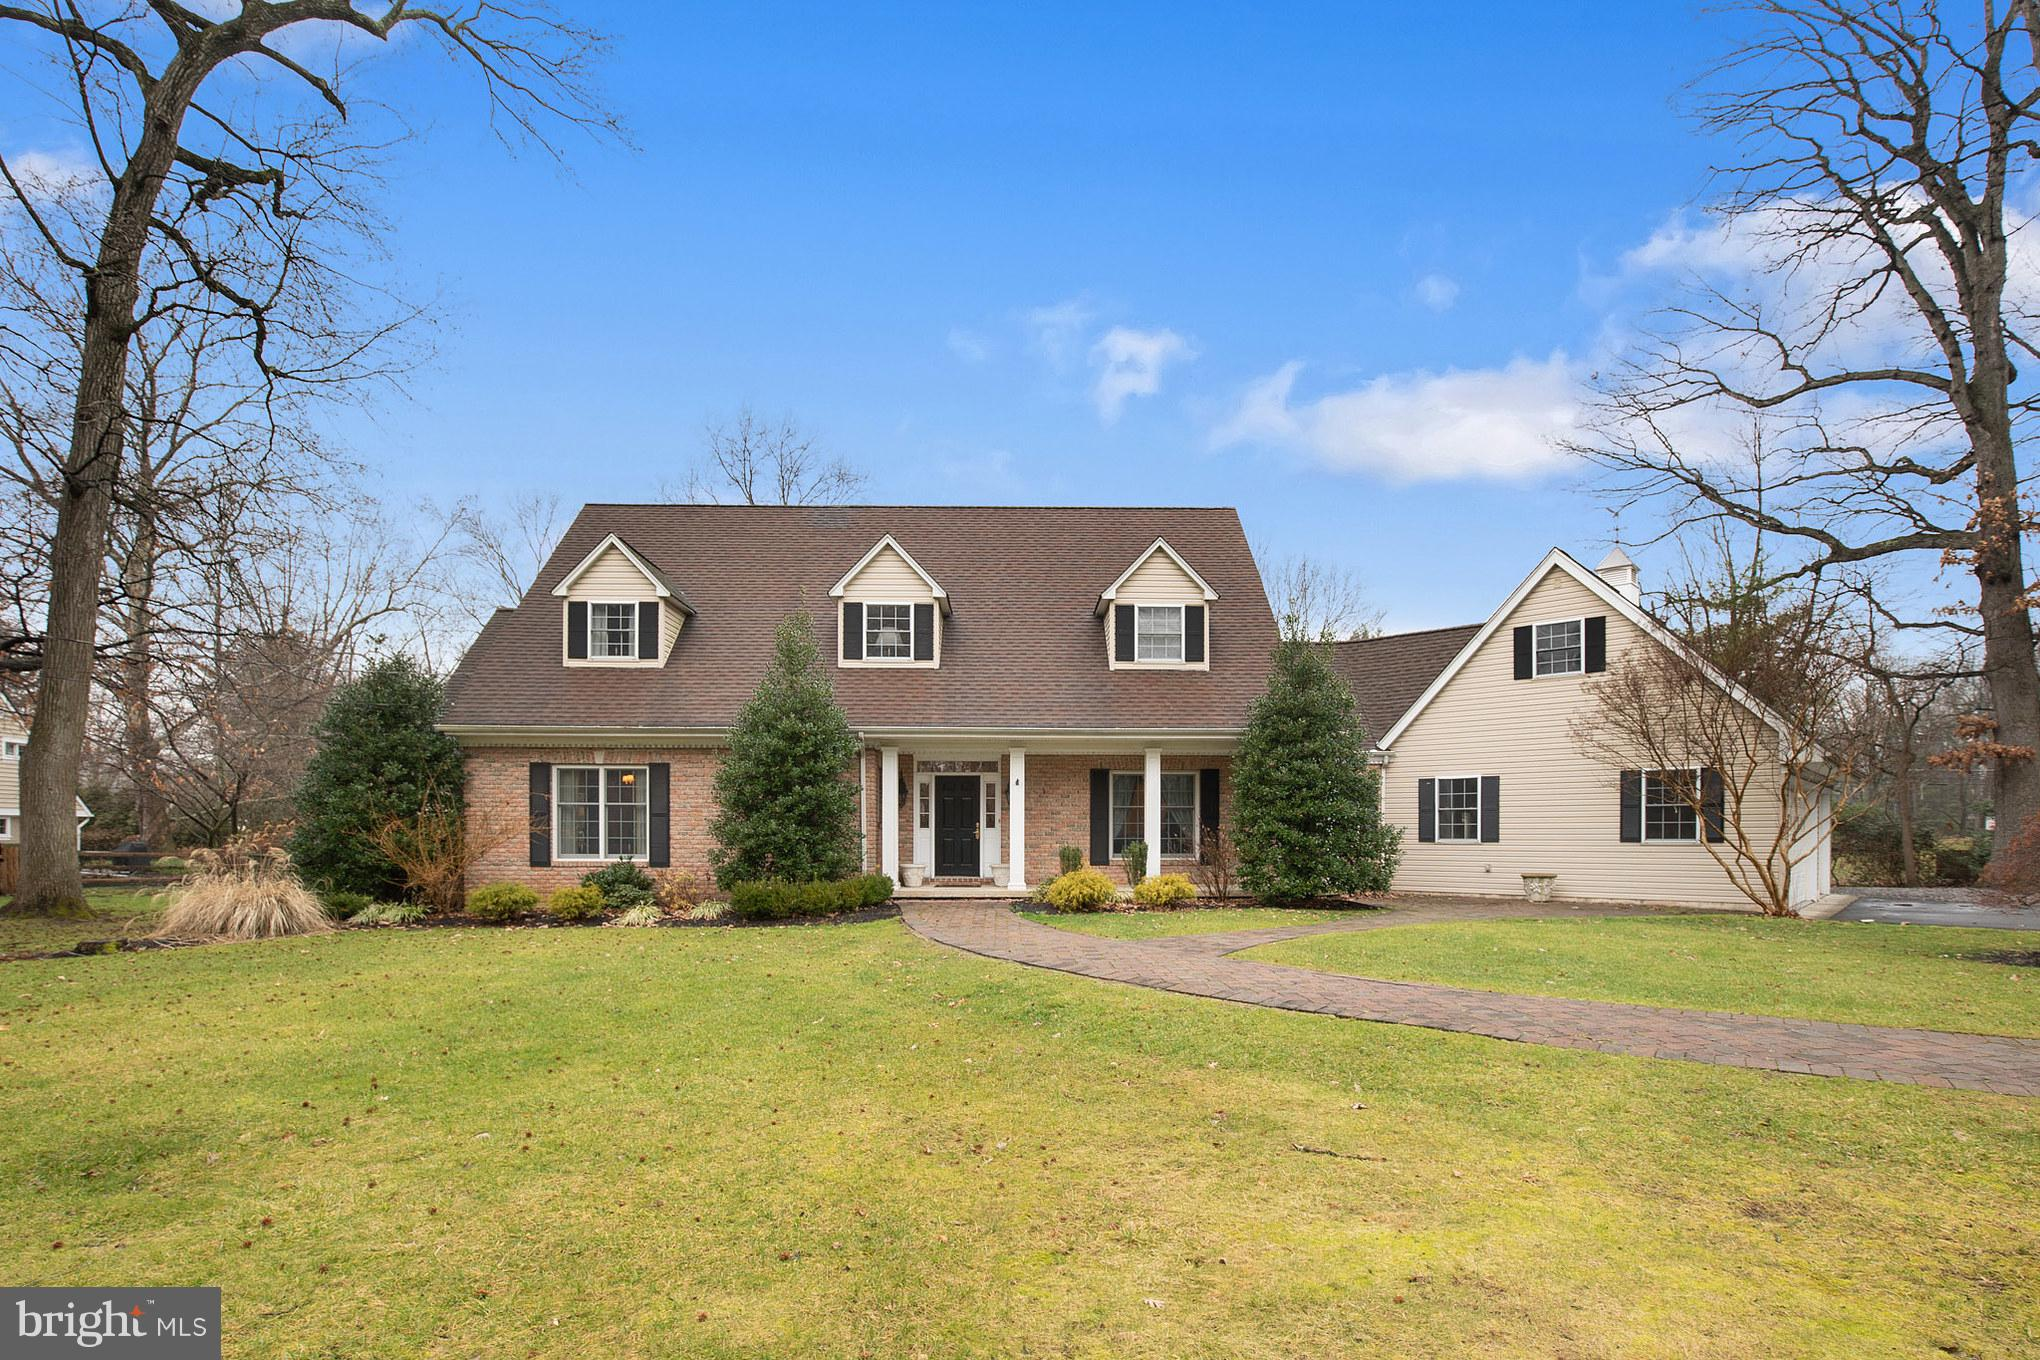 5 CARDINAL DRIVE, MOORESTOWN, NJ 08057